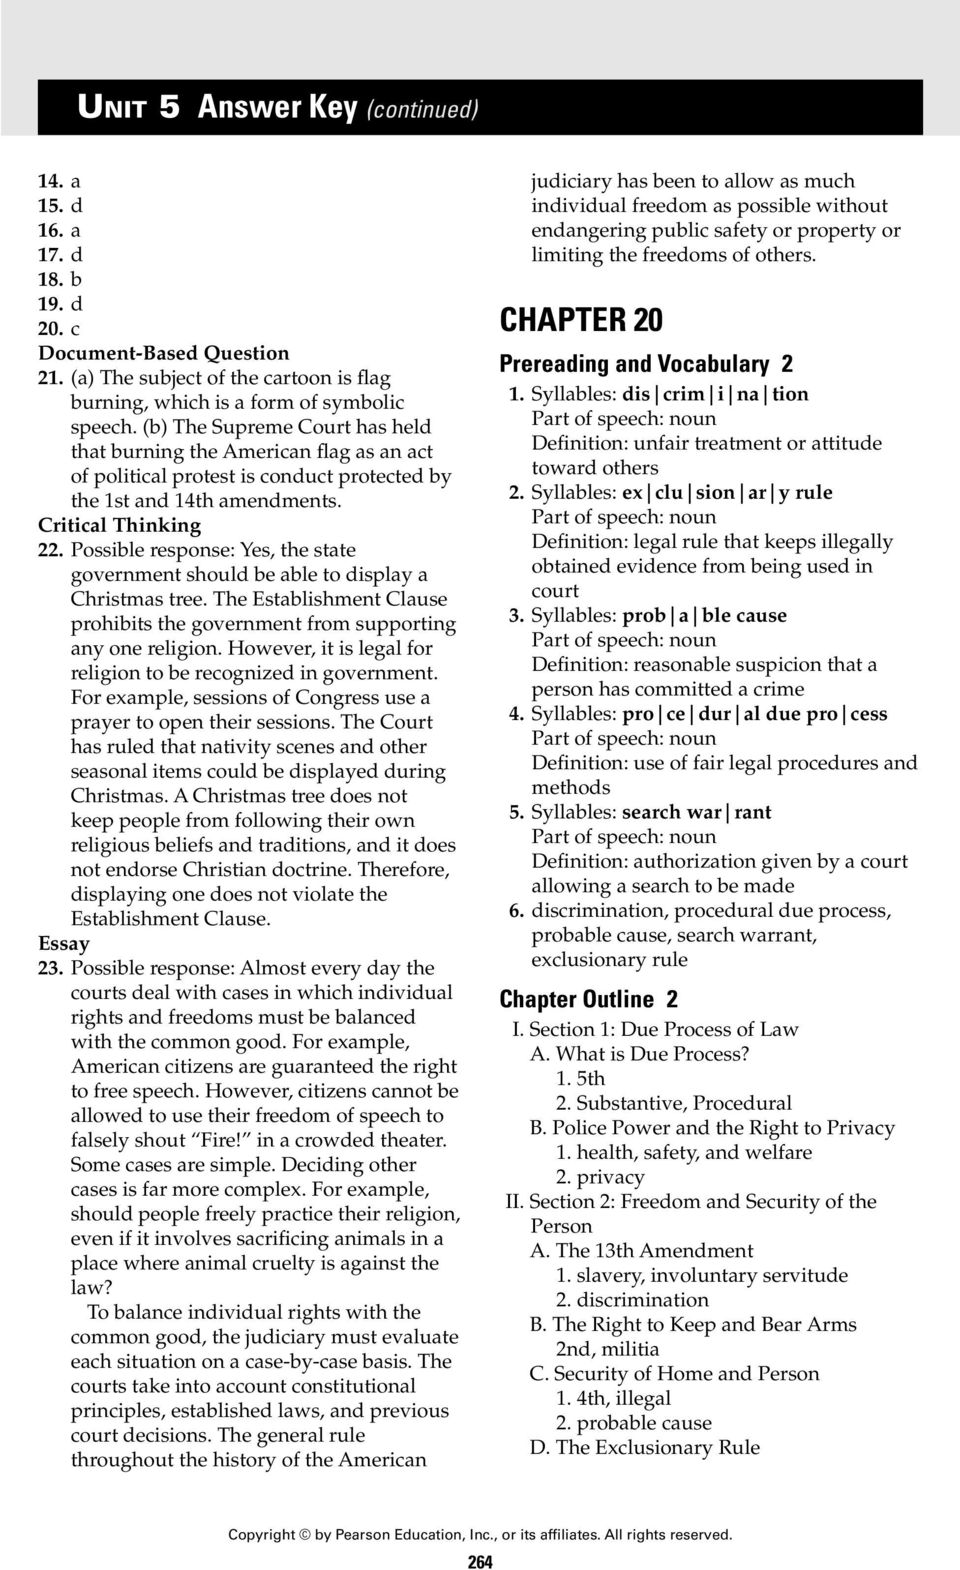 unit 5 answer key chapter 18 chapter 18 section 1 pdf rh docplayer net Percy Jackson The Lightning Thief Chapter 20 NC General Statutes Chapter 20